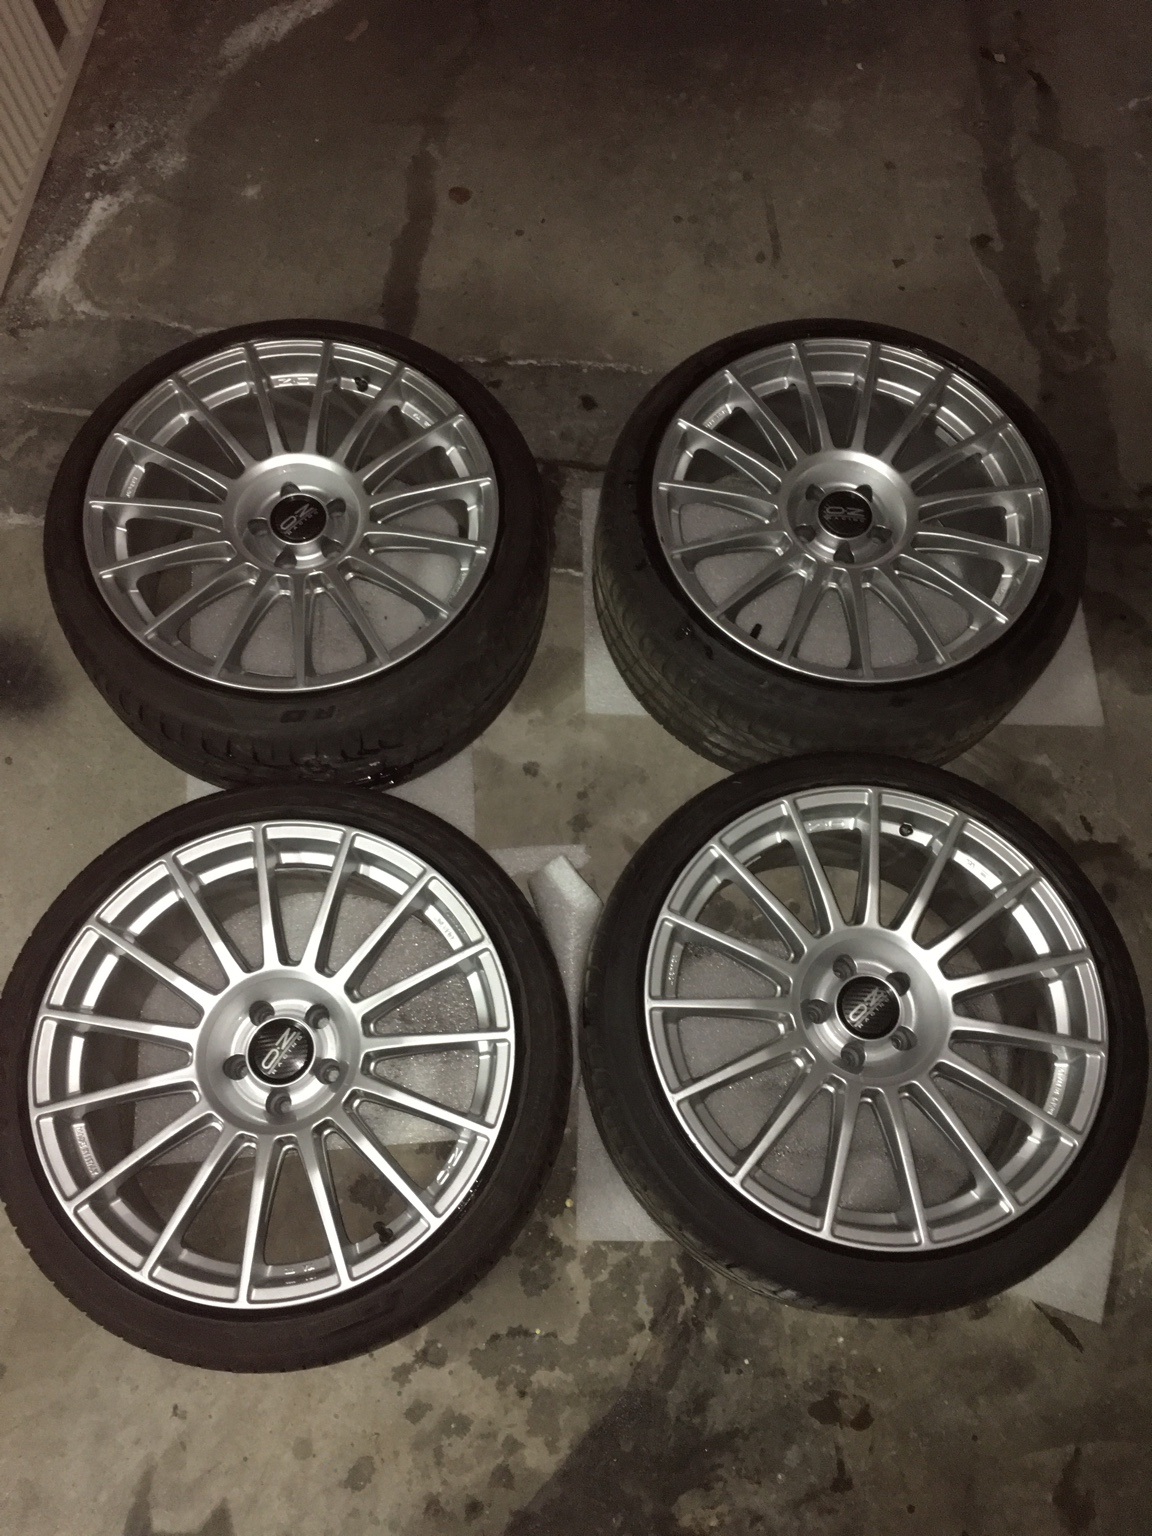 For Sale: Oz superturismo wheels with tires for sale !